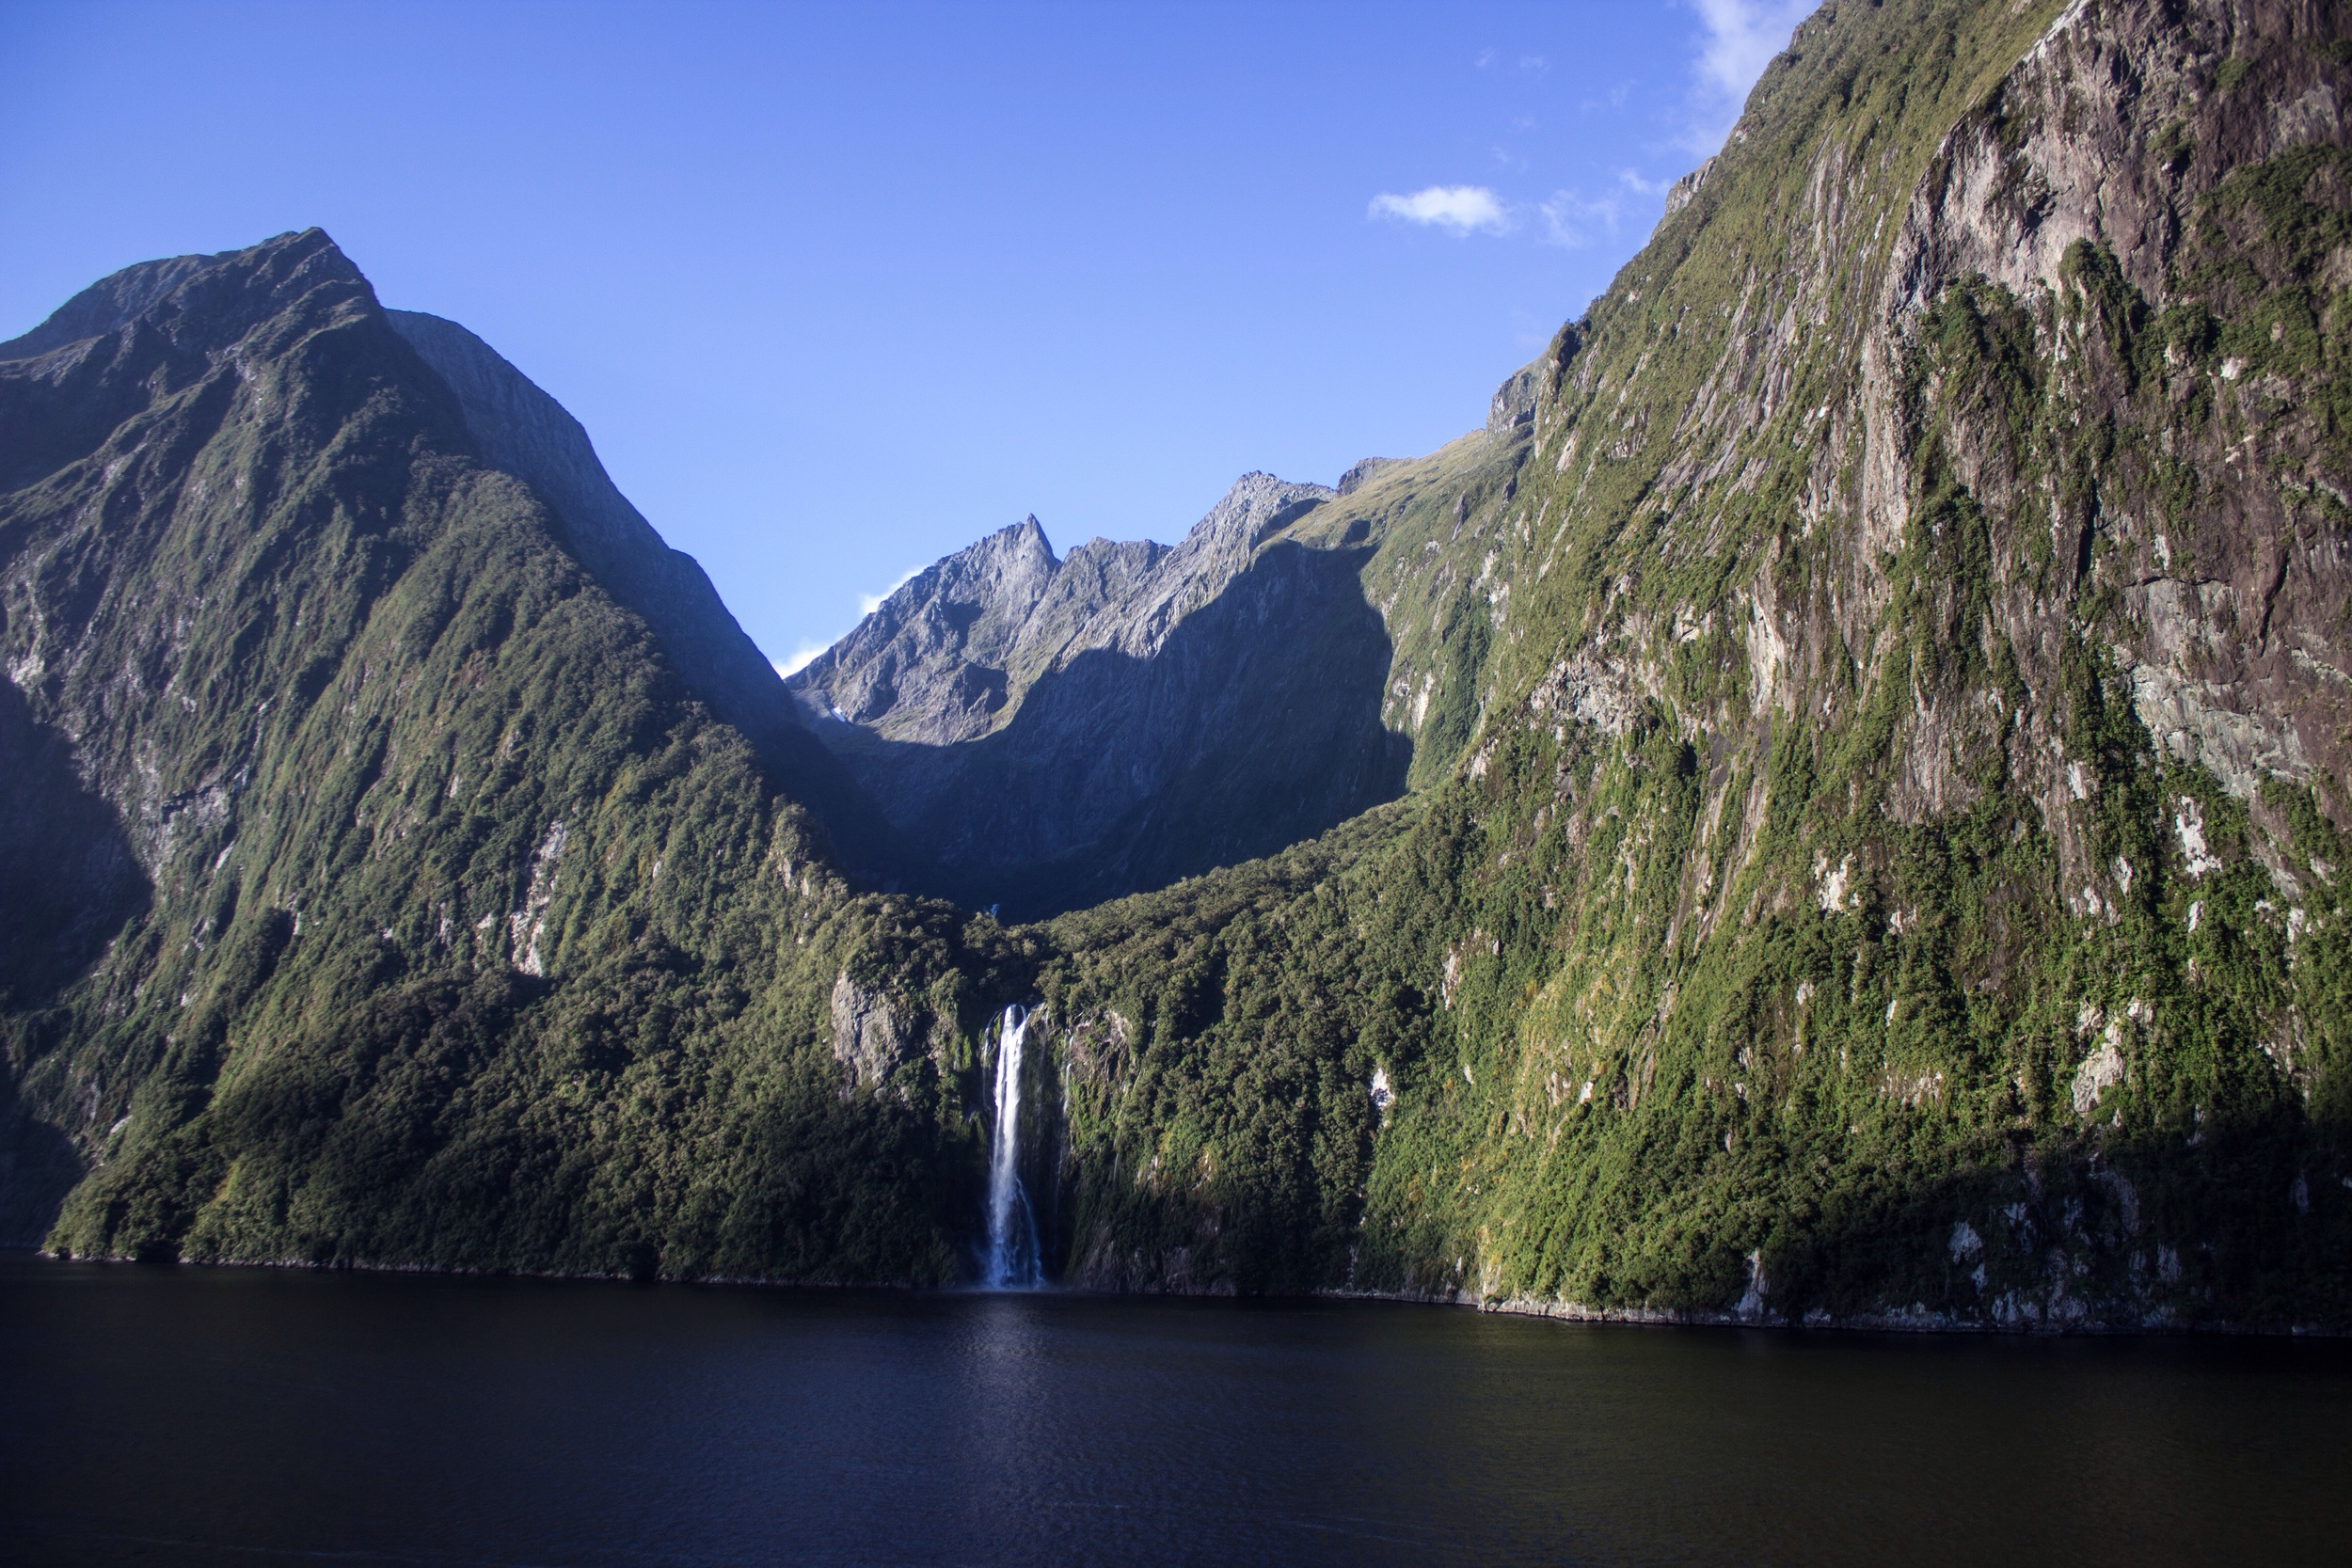 Stirling Falls dwarfed beneath the cliffs of The Lion and The Elephant. Milford Sound, New Zealand.